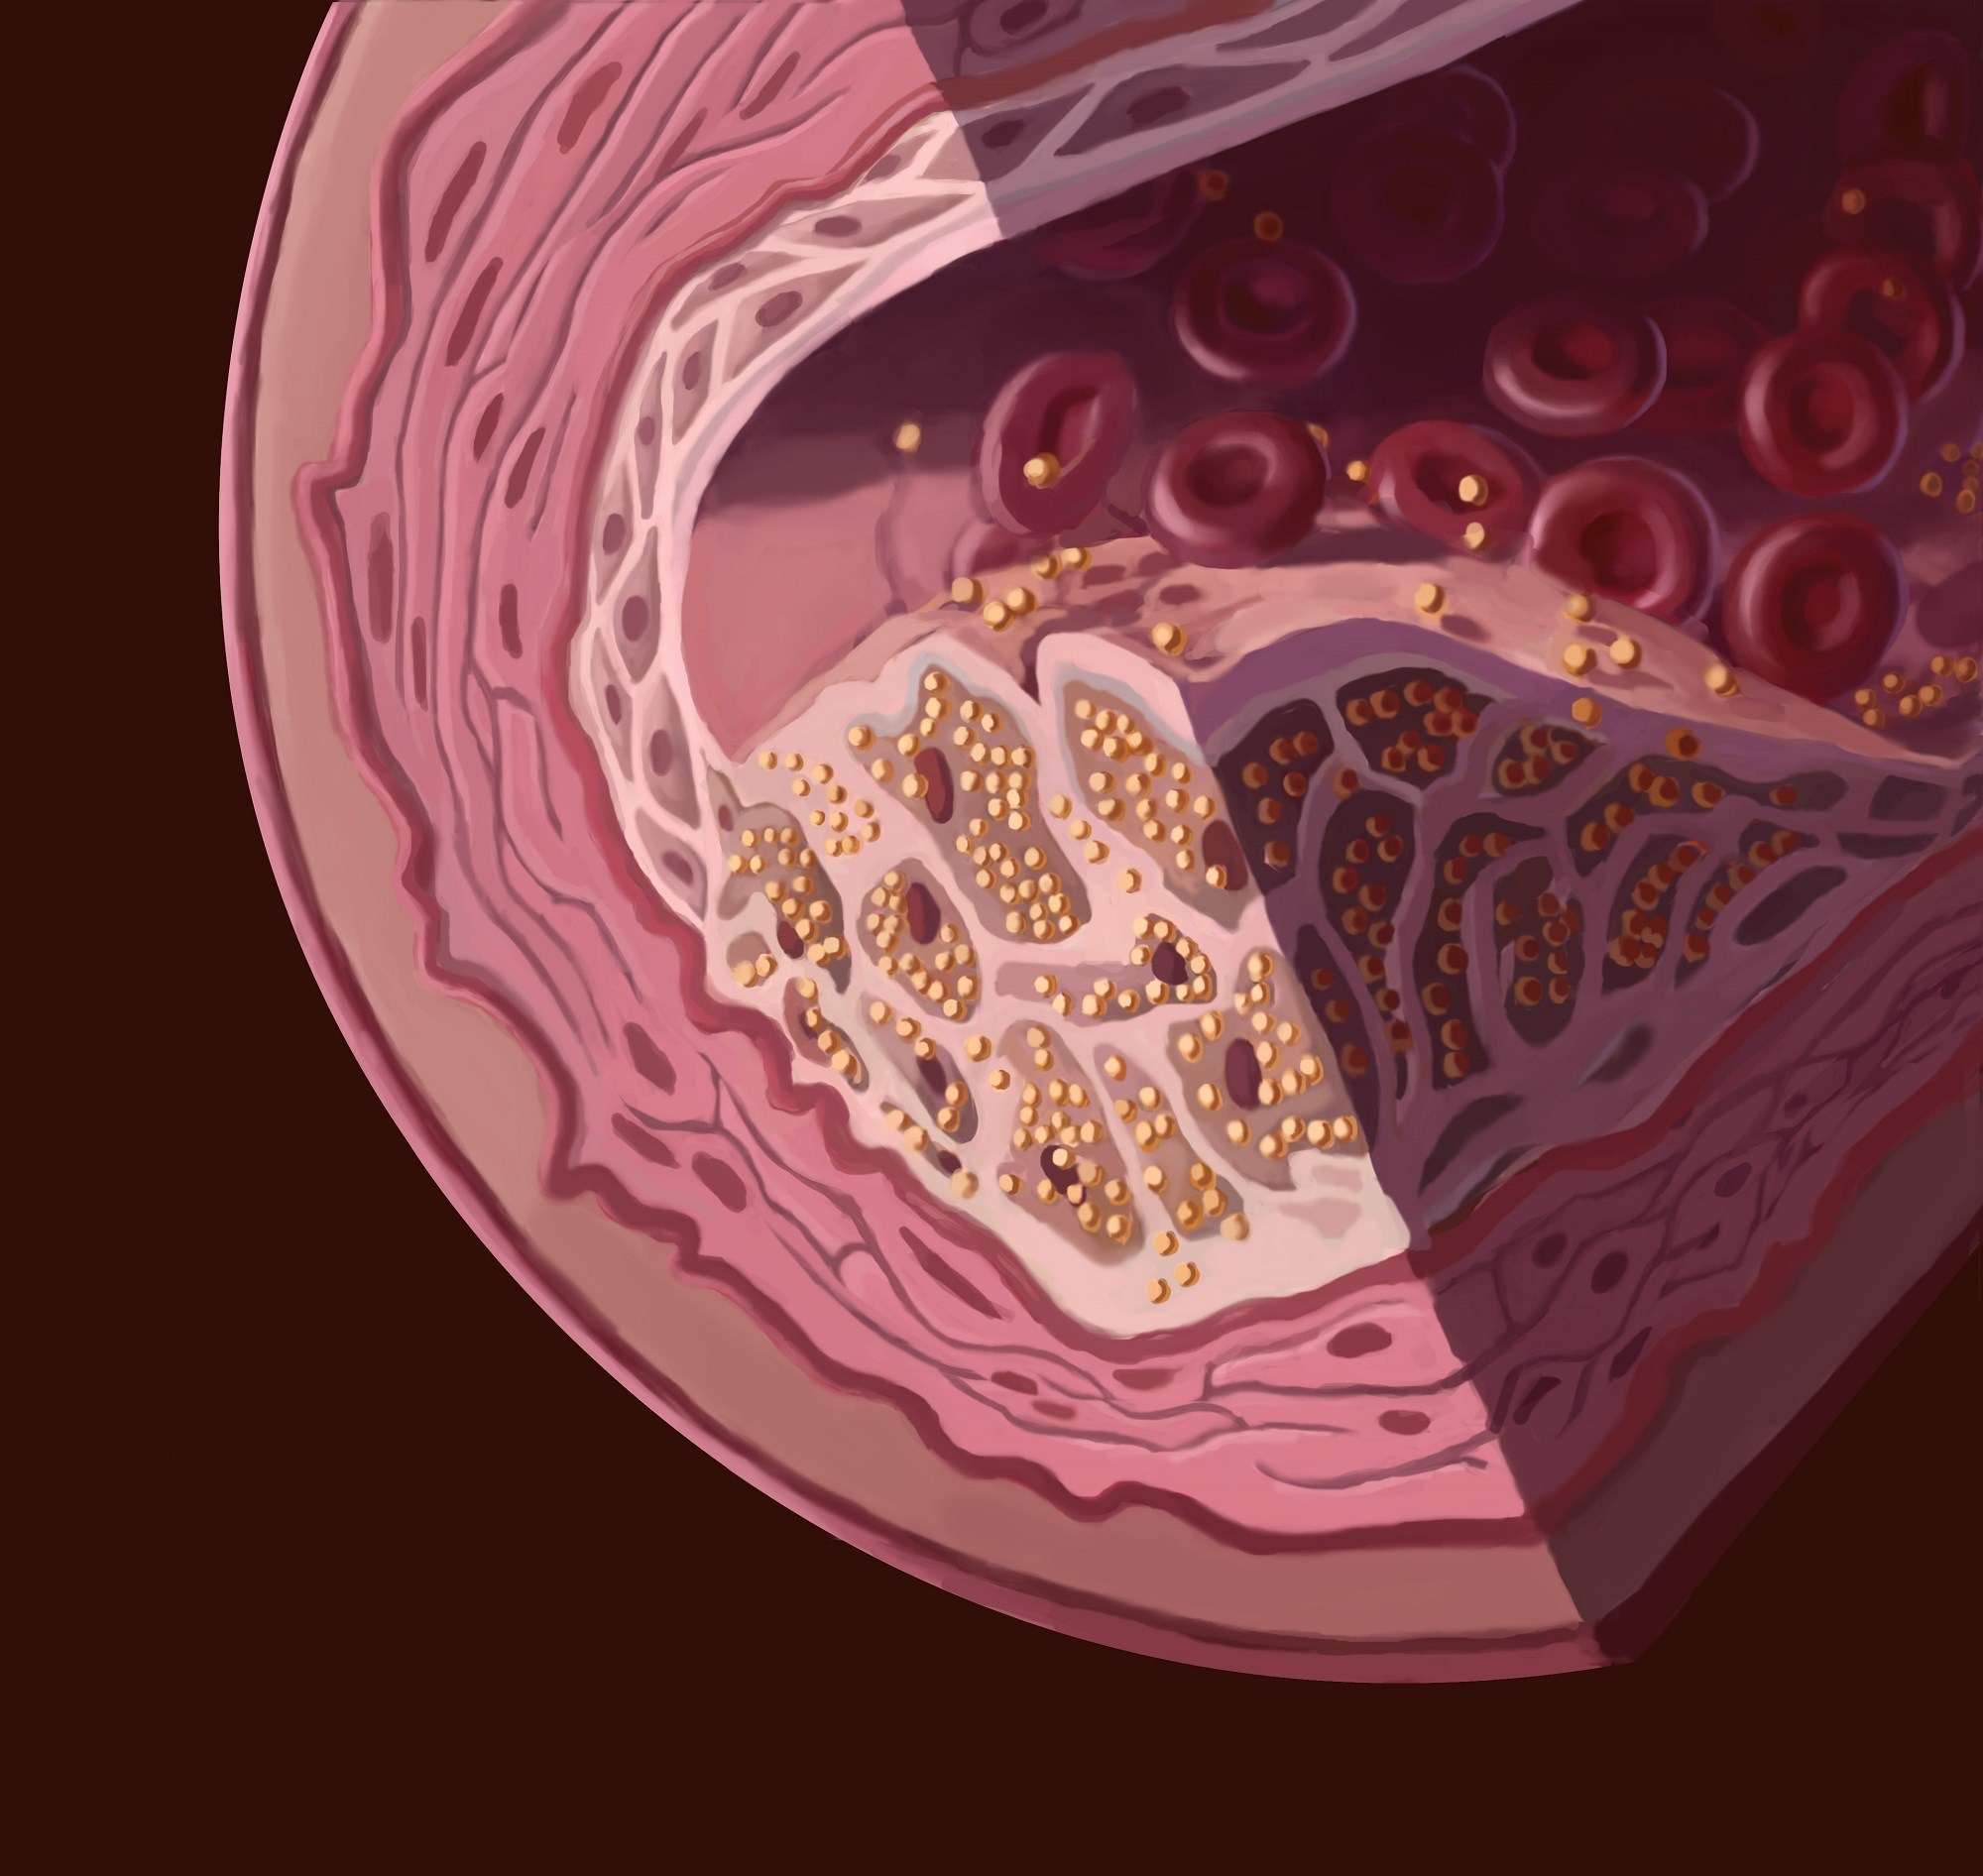 Early detection of familial hypercholesterolemia is important to forestall major premature cardiovascular events in young adulthood.